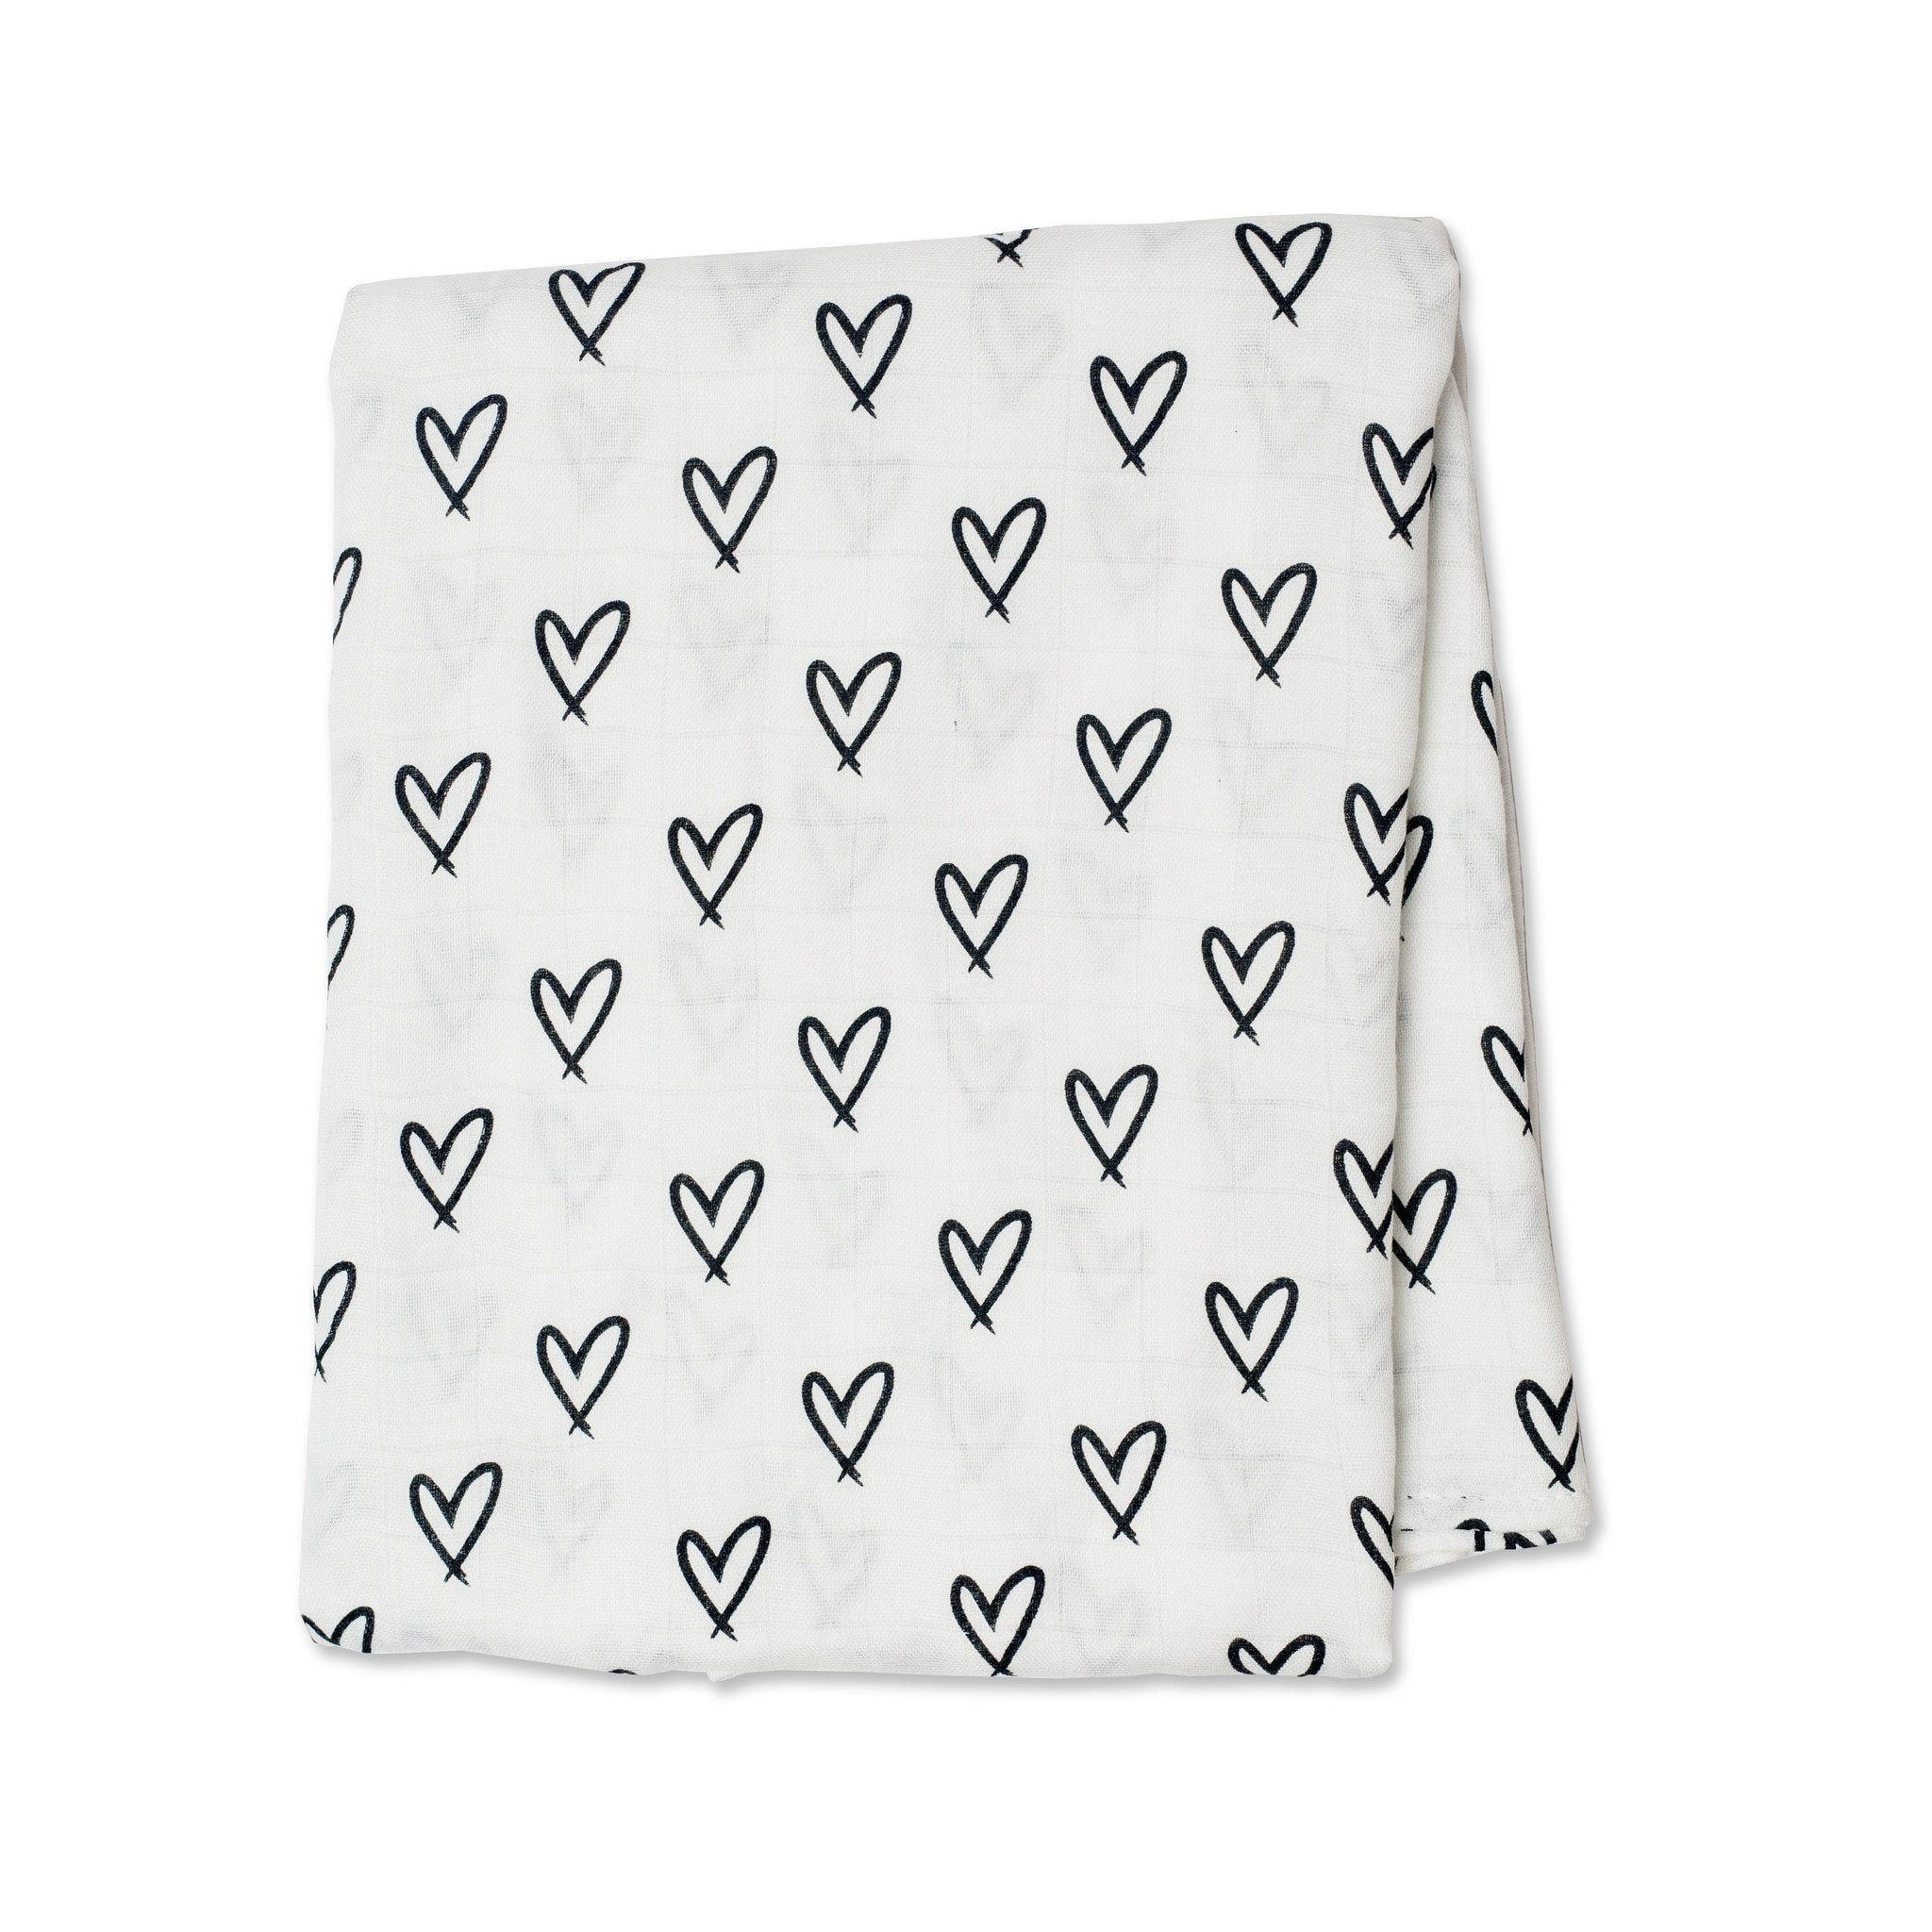 Messy Hearts Bamboo Muslin Swaddle - Project Nursery